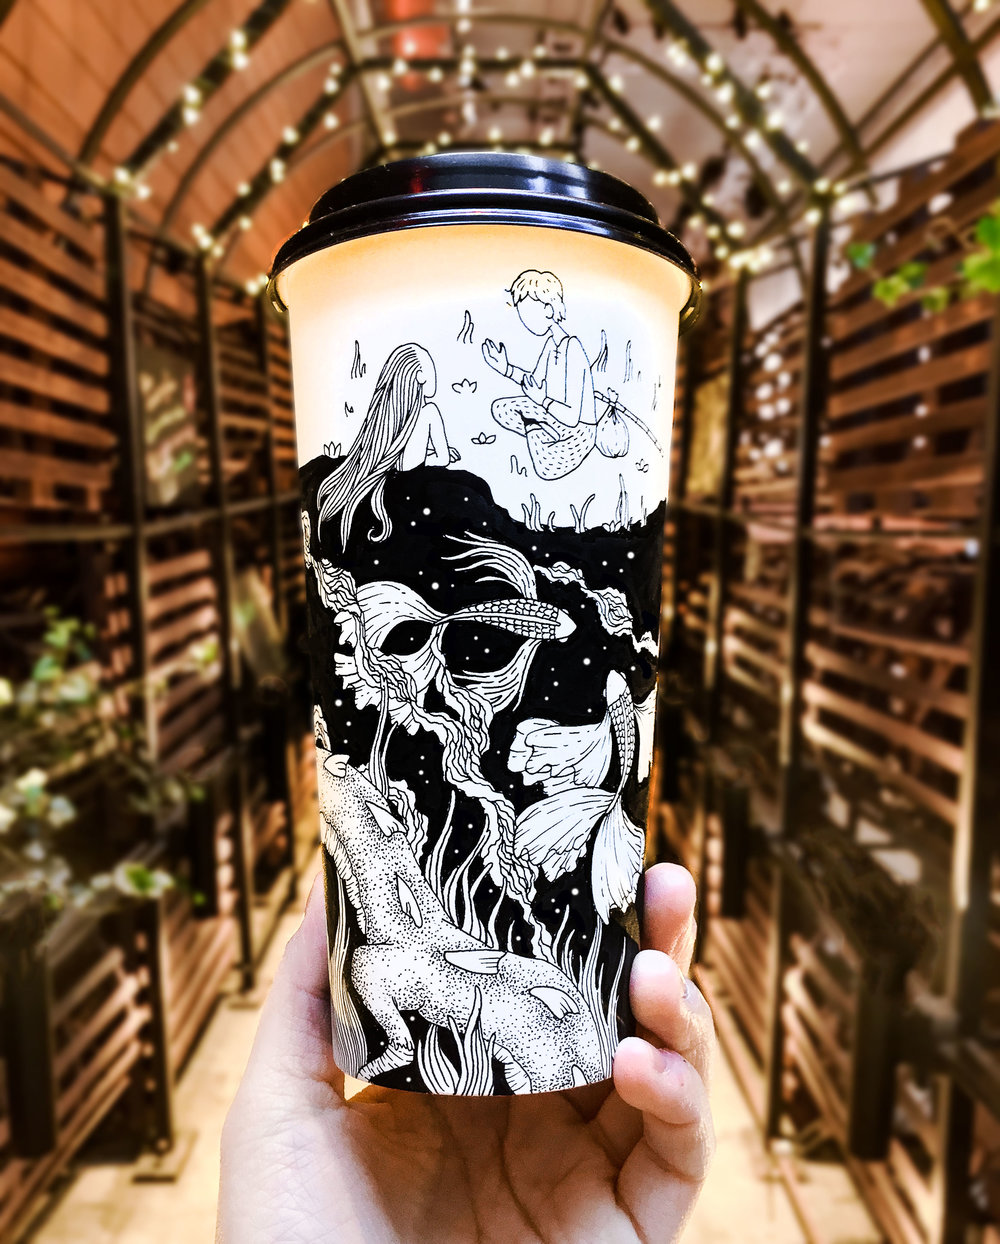 Pen drawings on a coffee cup